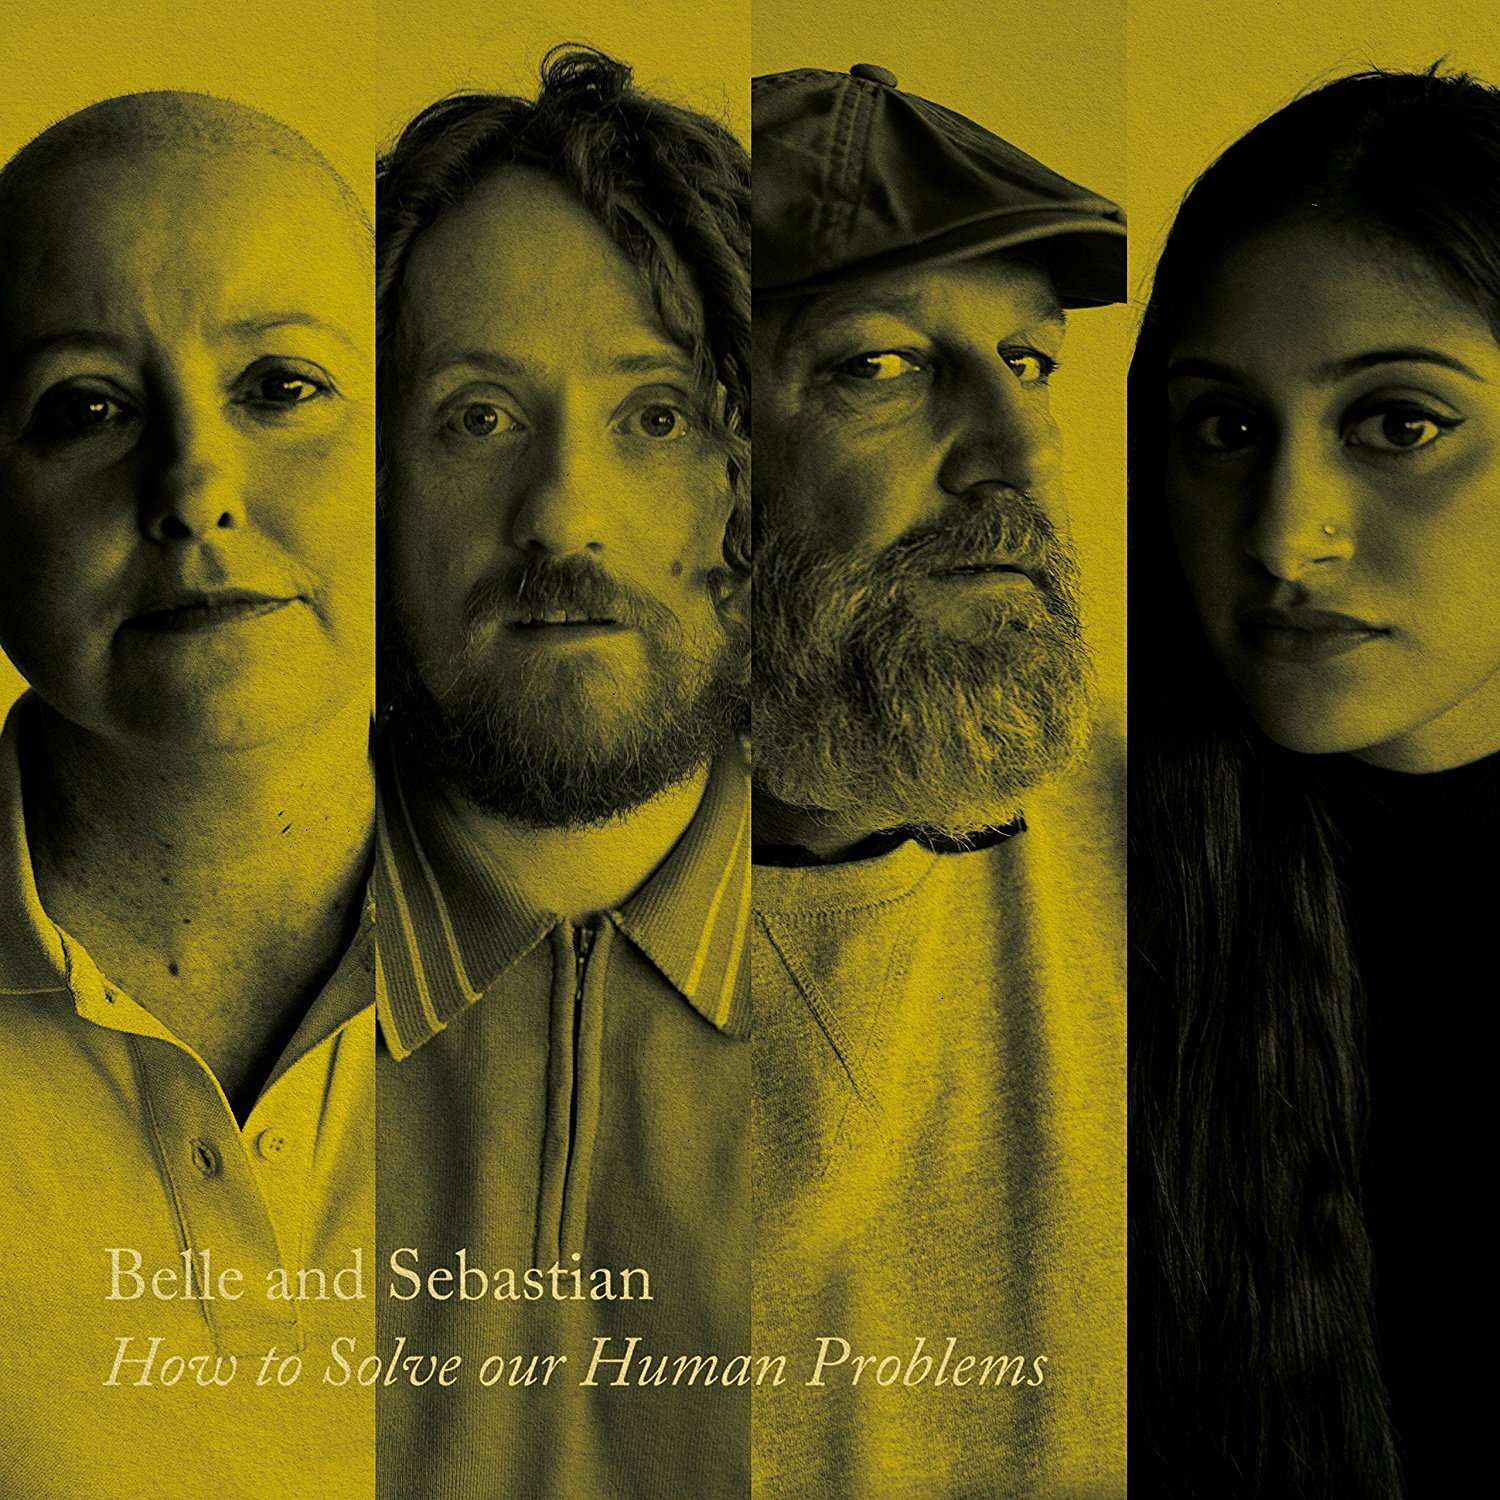 Belle & Sebastian - How To Solve Our Human Problems (Part 2) EP [Vinyl]